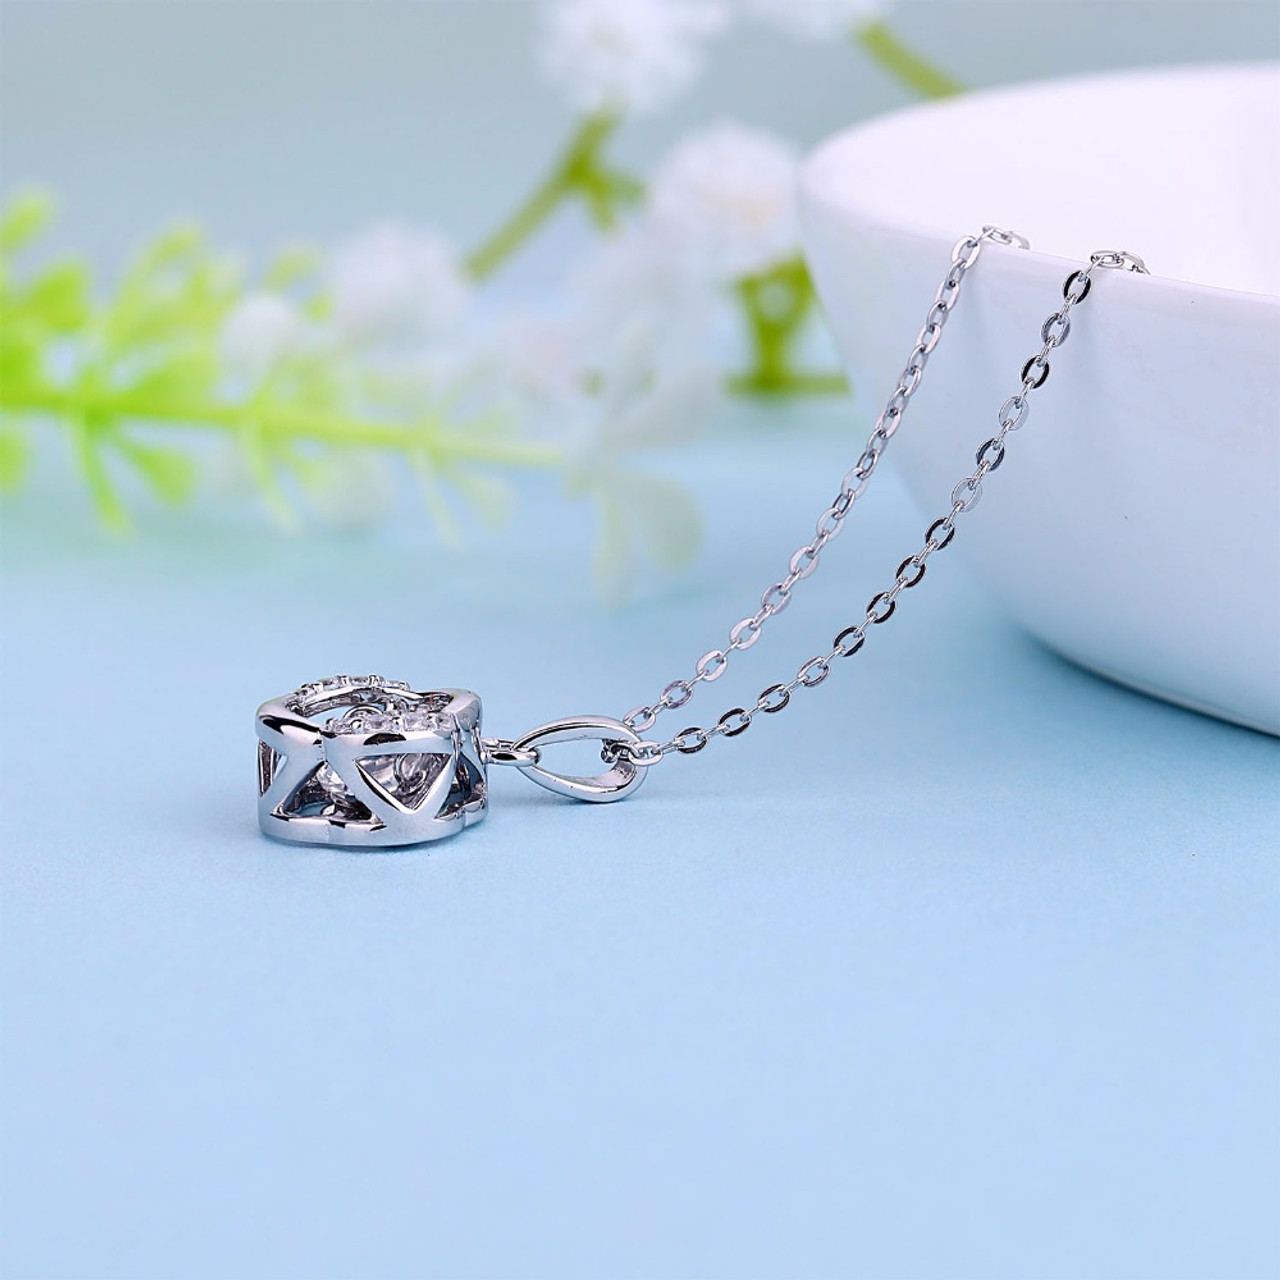 Yl flower 925 sterling silver topaz necklaces pendants for women yl flower 925 sterling silver topaz necklaces pendants for women fine jewelry natural dancing topaz stone mozeypictures Gallery